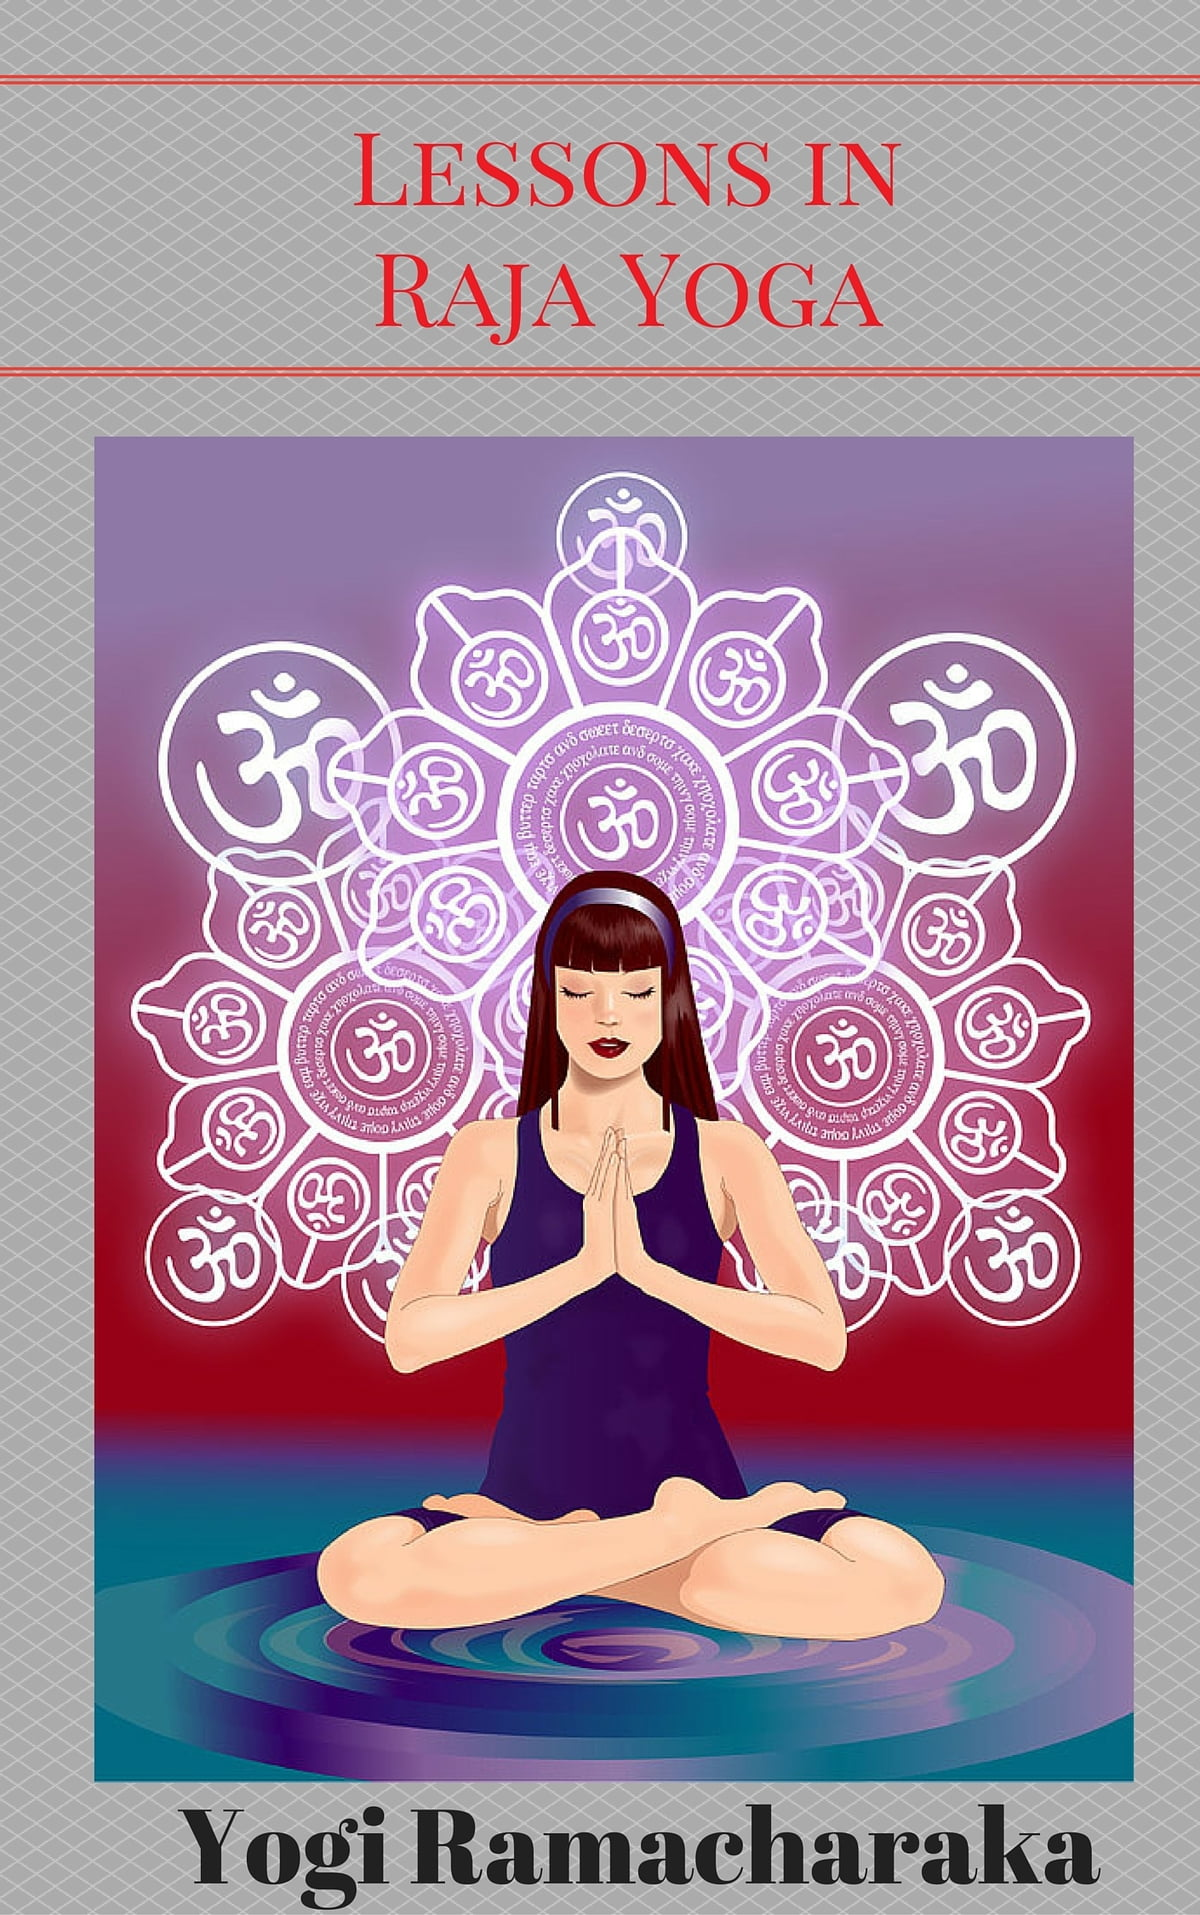 Raja Yoga Libro A Series Of Lessons In Raja Yoga Ebook By Yogi Ramacharaka Rakuten Kobo